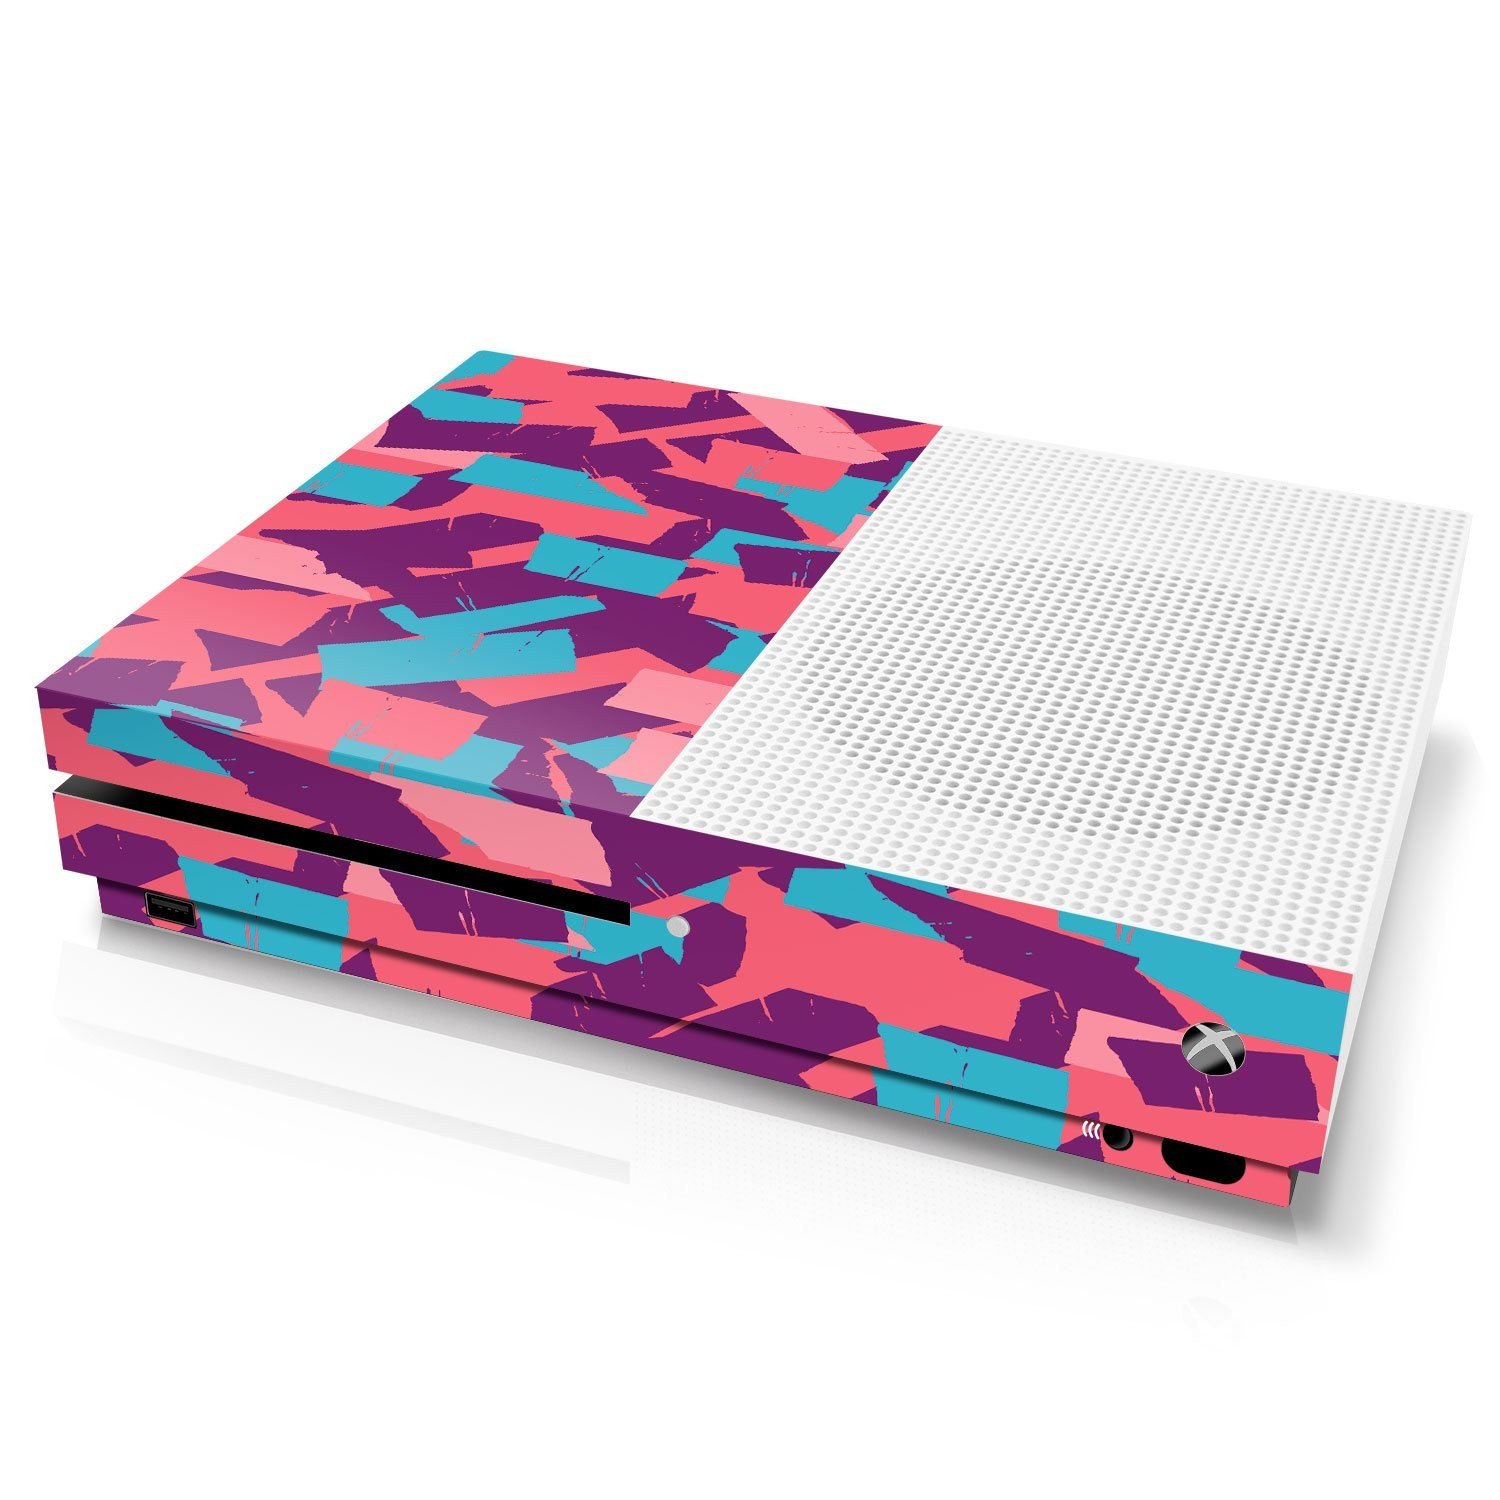 Xbox One S Console Skin - Camouflage: Bubble Gum Torn Tape - Officially Licensed by Xbox